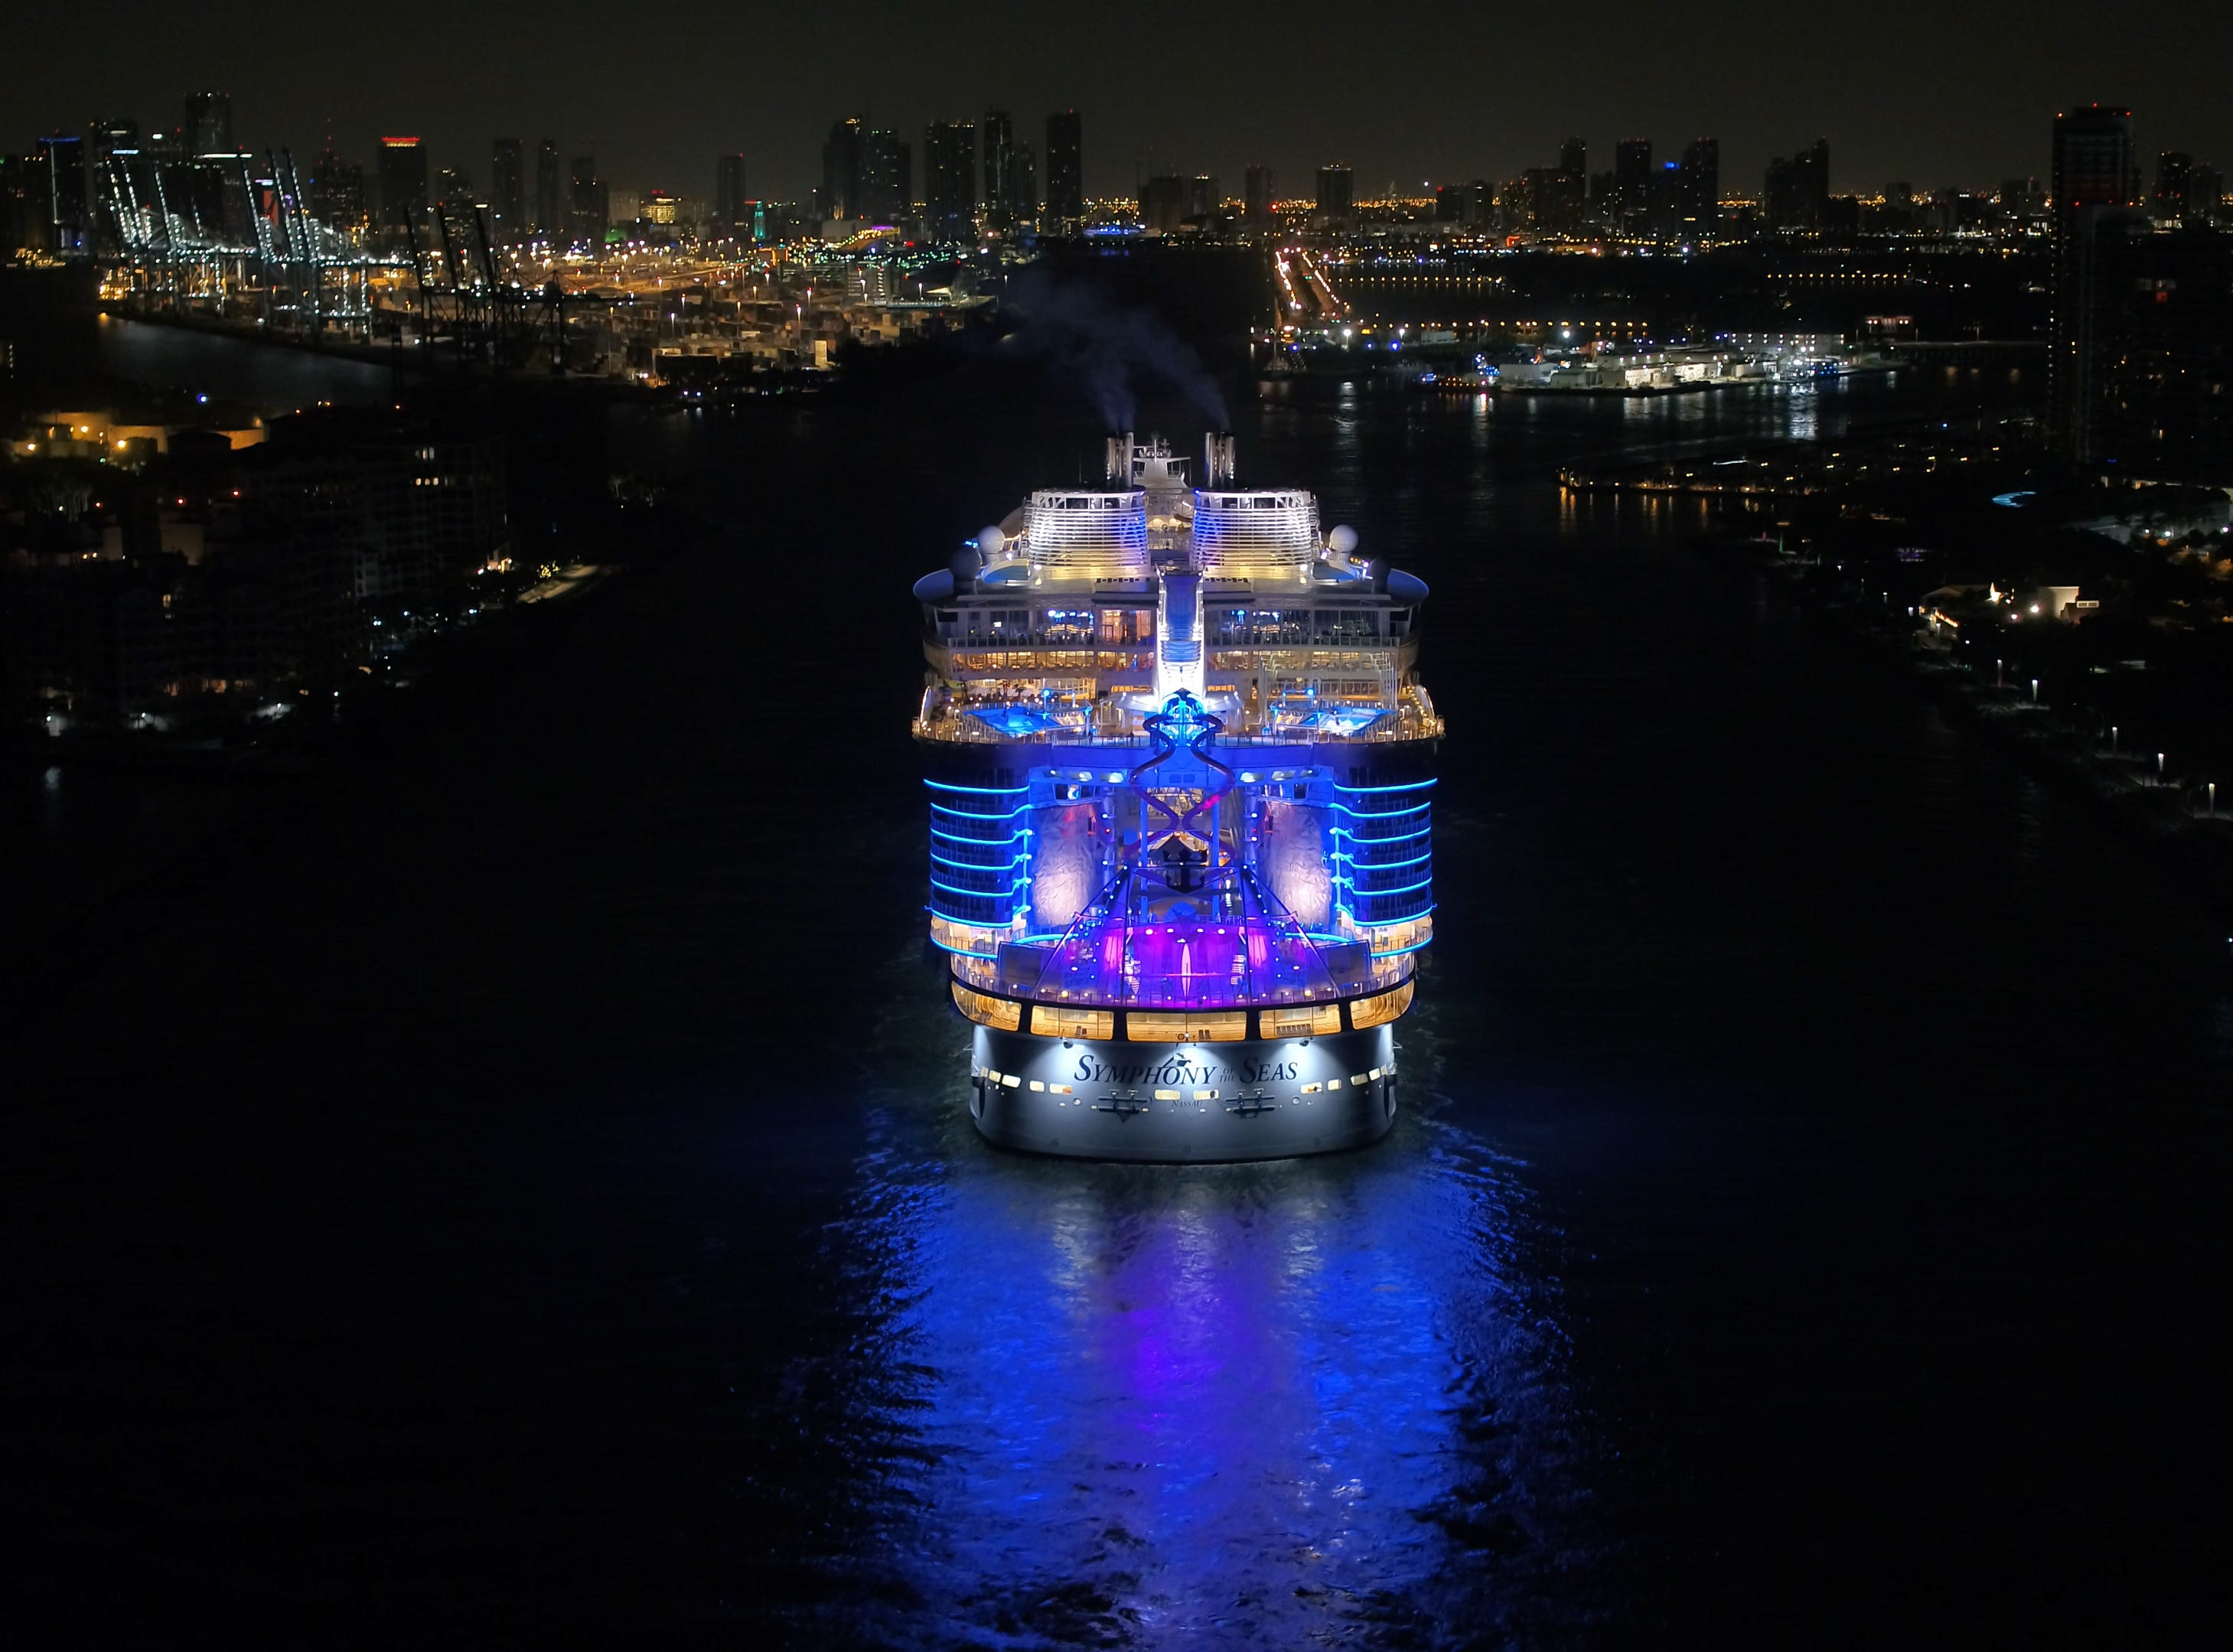 Shown here pulling into the Port of Miami for the first time on Nov. 9, 2018, Royal Caribbean's Symphony of the Seas measures 228,081 gross tons and can carry more than 6,000 passengers.